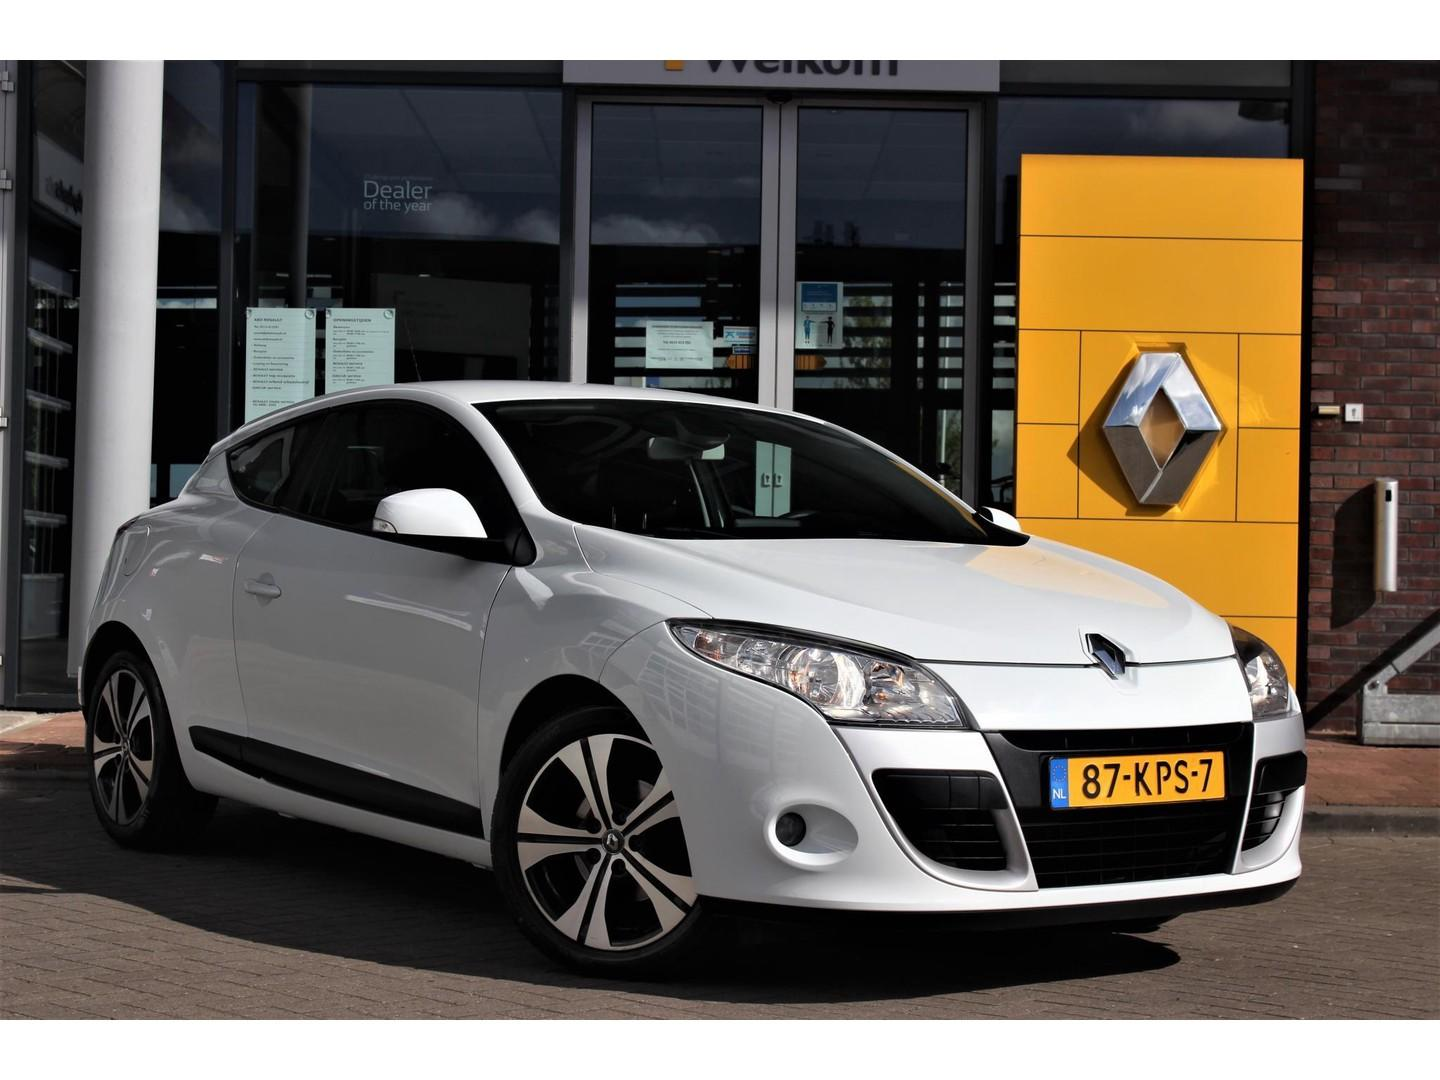 Renault Mégane Coupe 1.6-16v 110pk expression